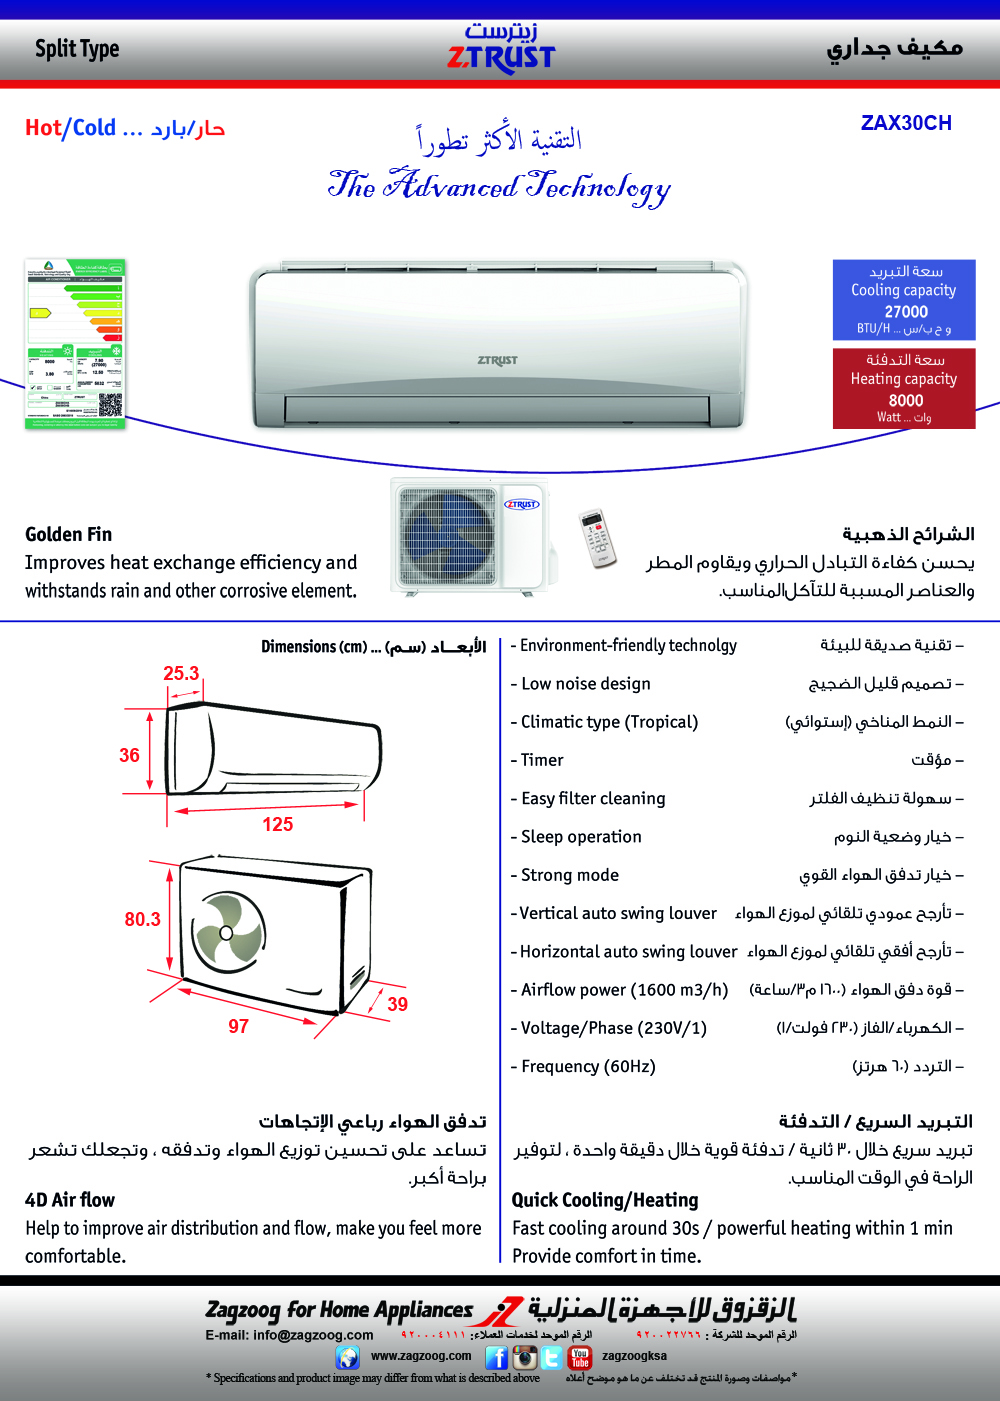 Hot/Cool wall 27000 Btu